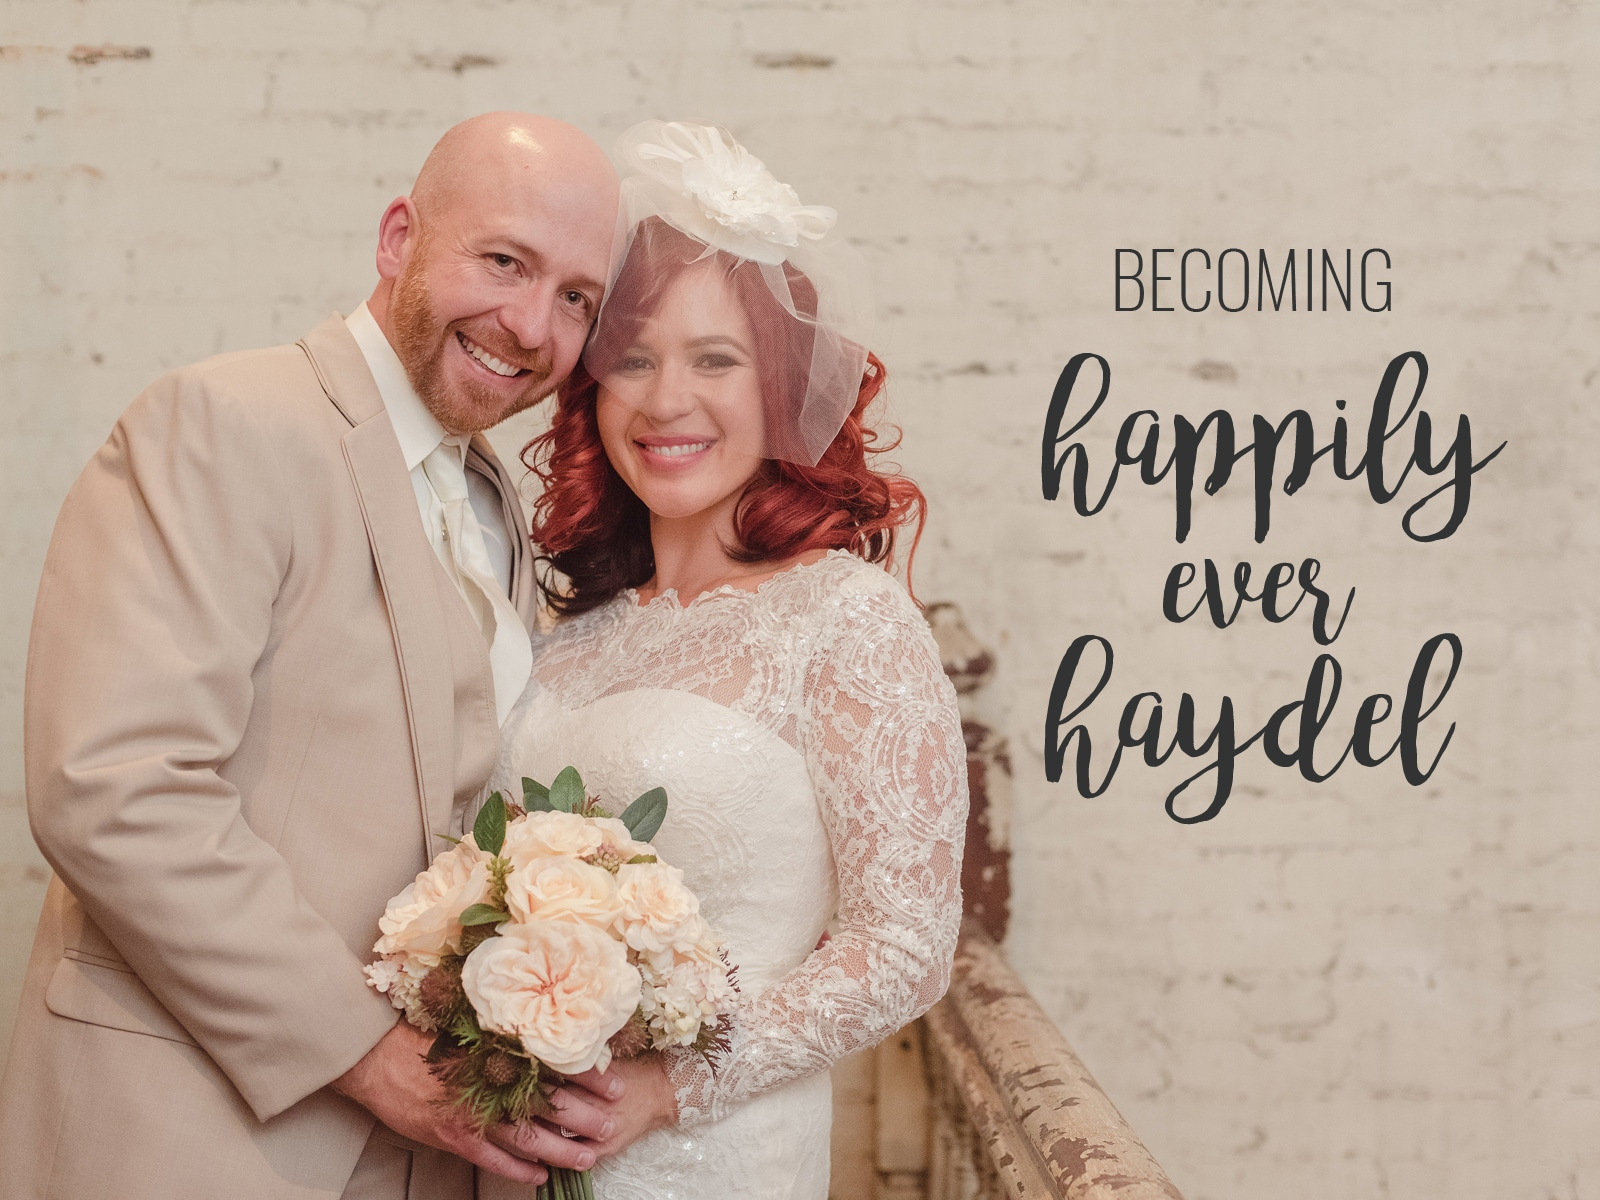 REAL WEDDING:: LAUREN + RYAN {Happily Ever Haydel}